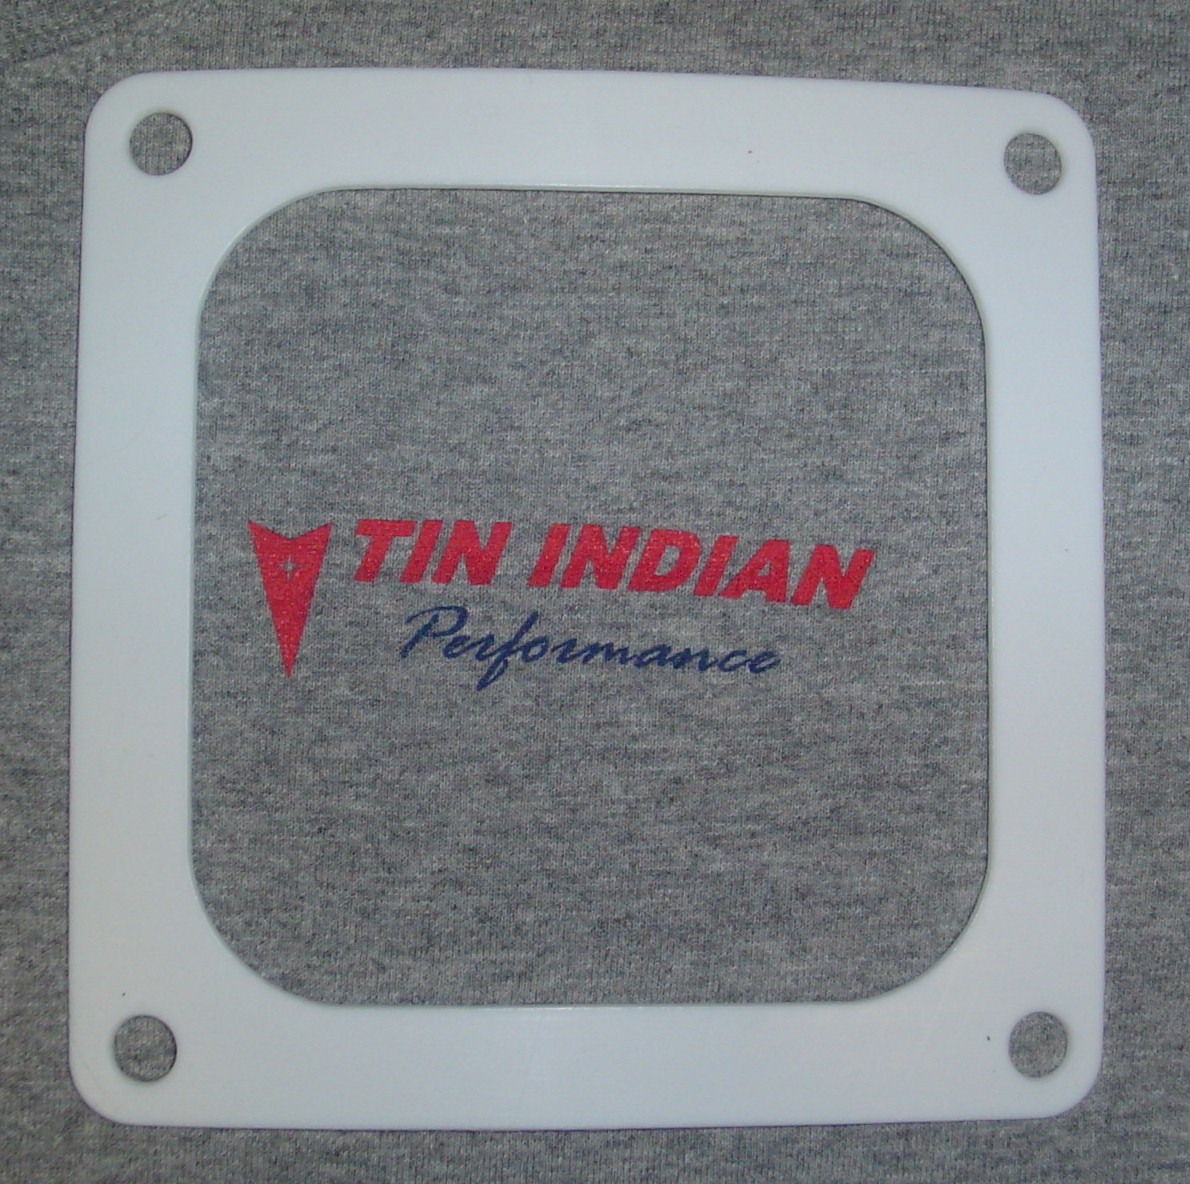 Tin Indian Performance - Buick Crank Mandrel Drive Systems